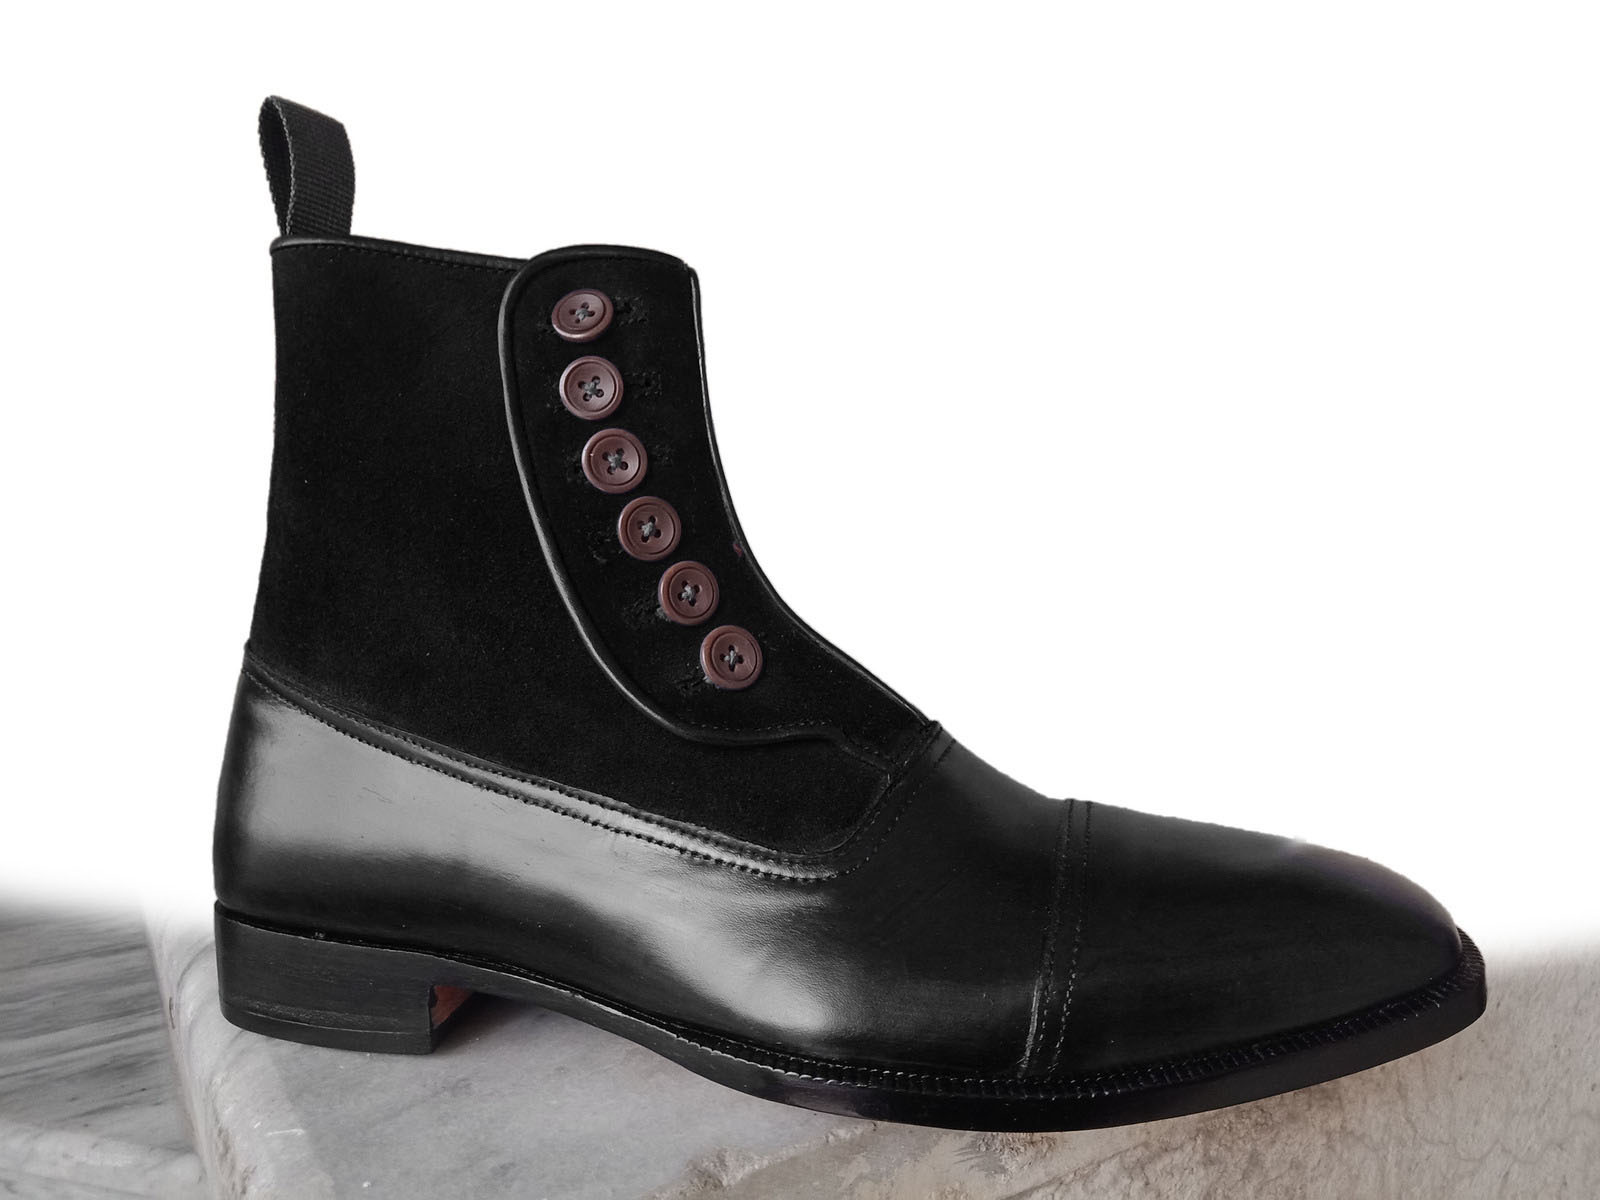 2b21921a14 Handmade mens navy blue suede leather boot men s cap toe button ankle high  boot1